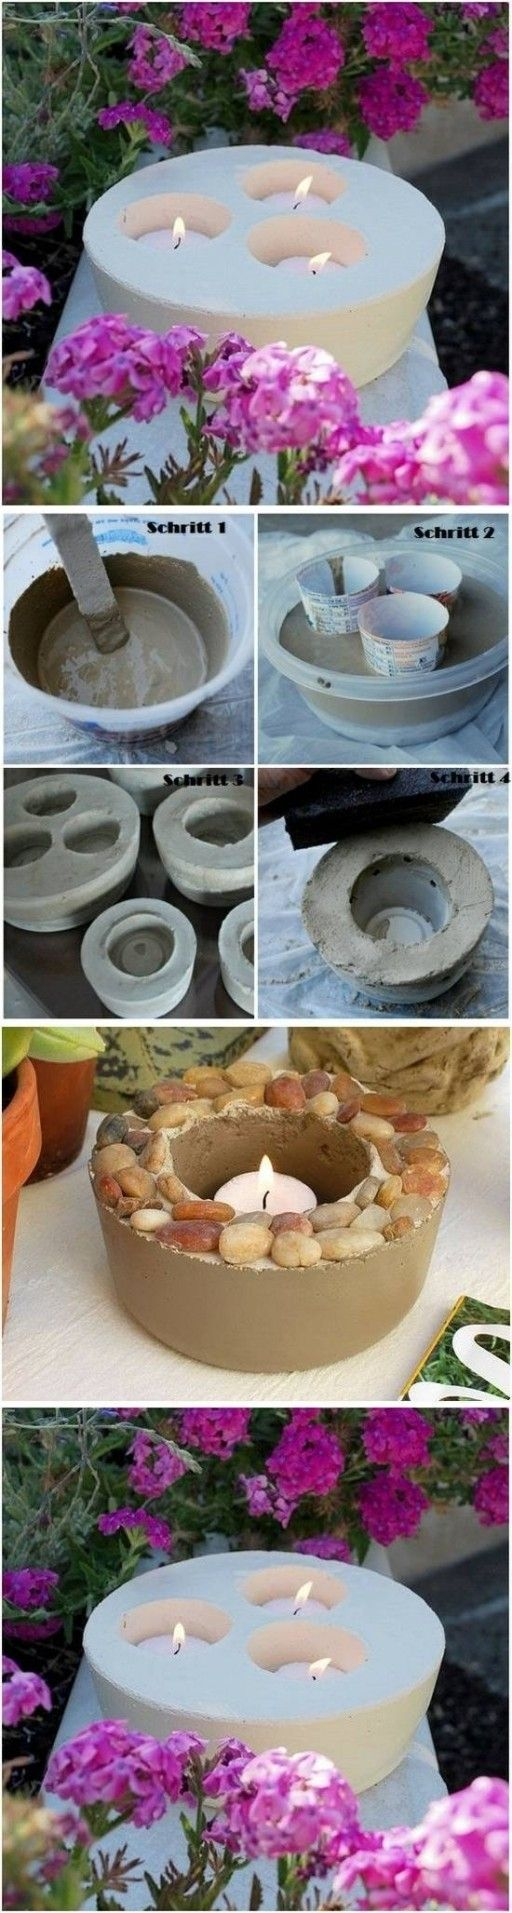 How To Make Concrete standing Candle holders step by step DIY tutorial instructions, How to, how to do, diy instructions, crafts, do it your by Mary Smith fSesz